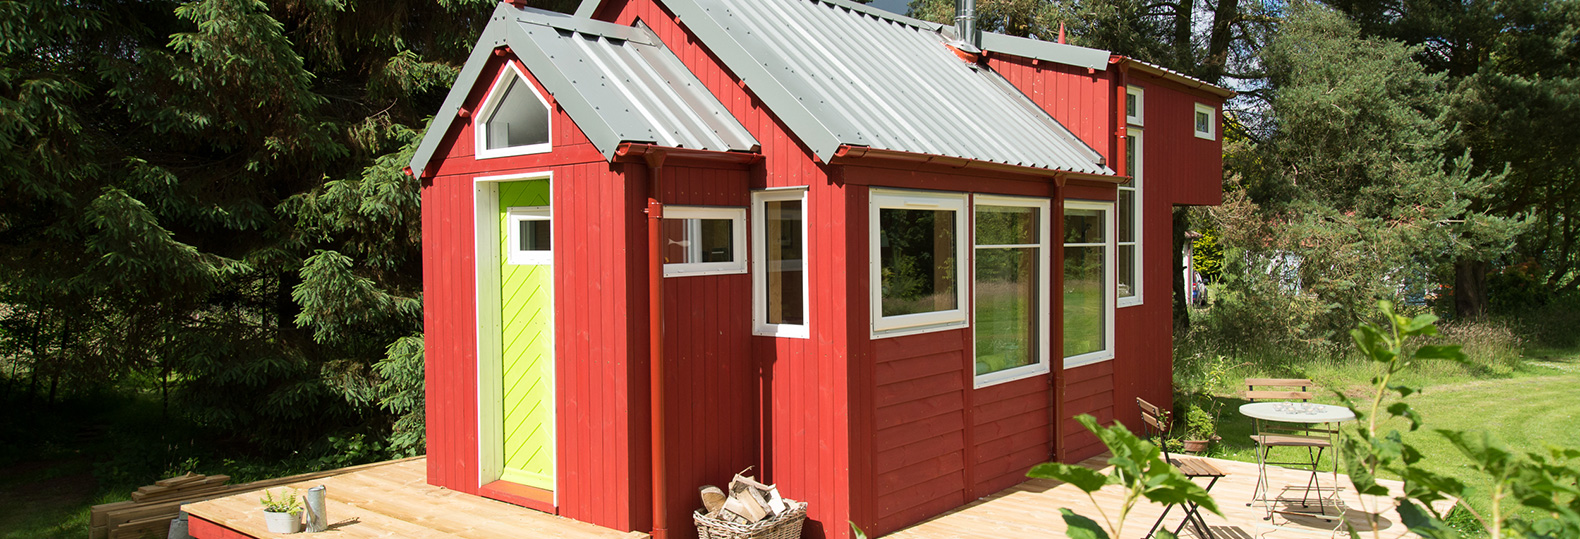 Charming off-grid Scandinavian-inspired tiny home is passive and energy efficient